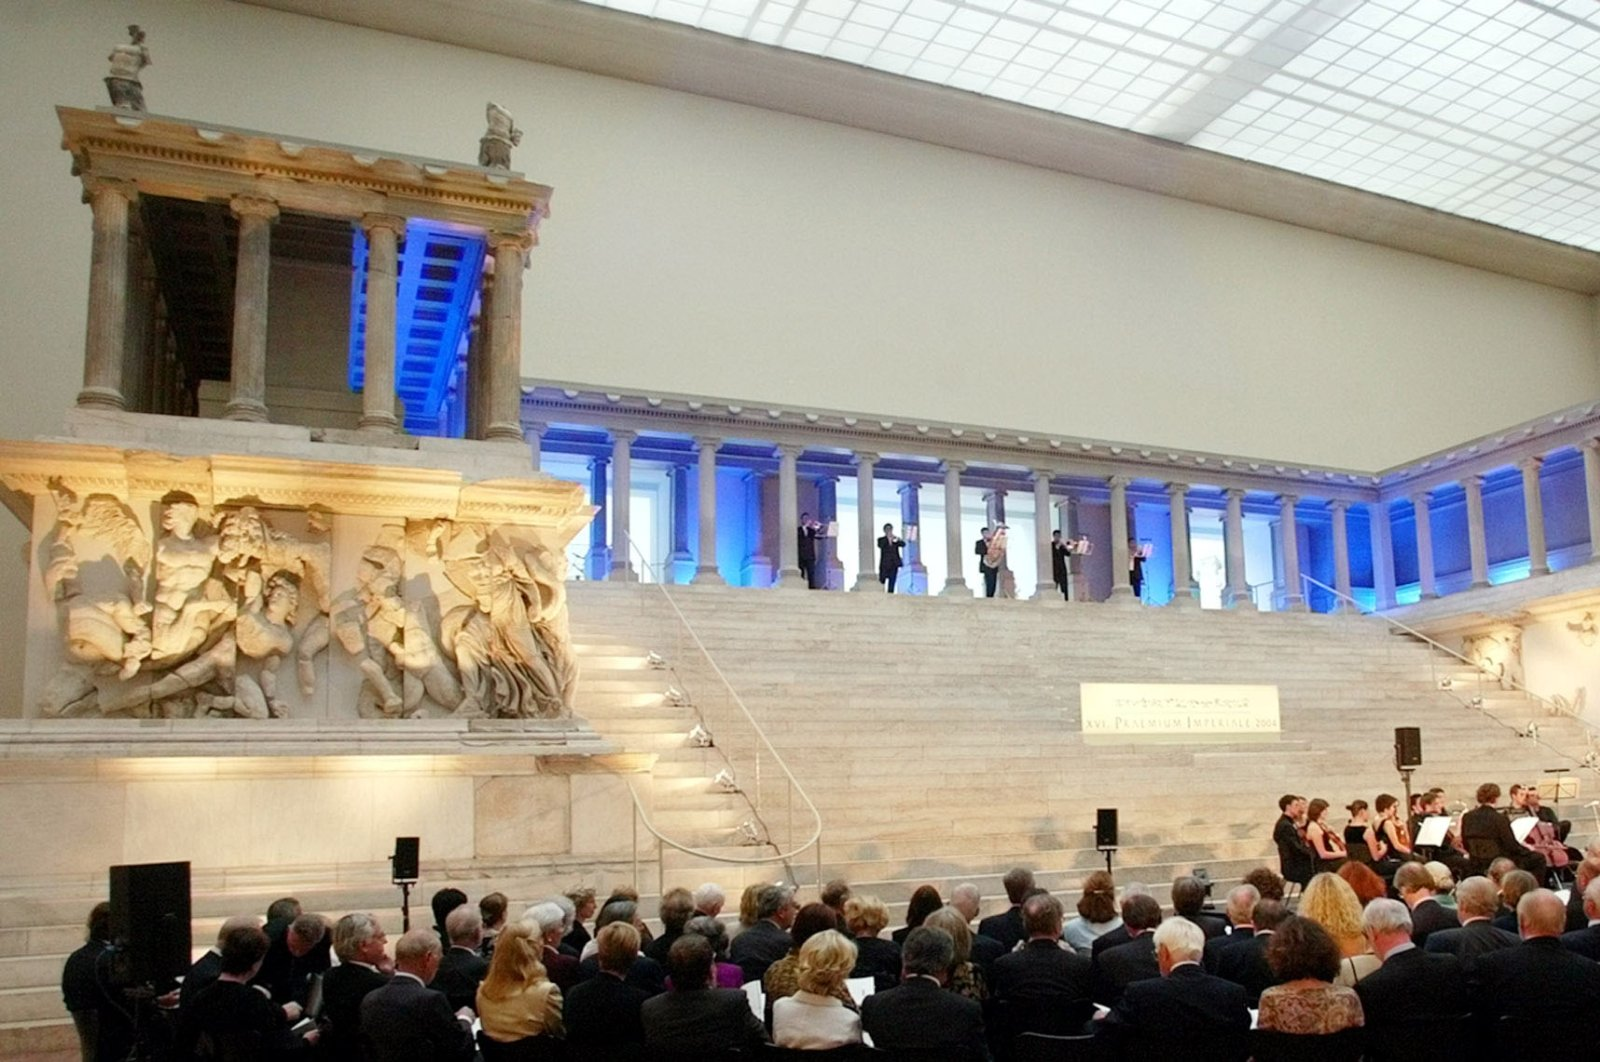 """The world-famous Pergamon Altar is pictured during the """"Praemium Imperiale"""" celebration hosted by the Japanese organization """"Nobel Prize for the Arts,"""" in the Berlin Pergamon Museum, Germany, June 8, 2004. (AP PHOTO)"""